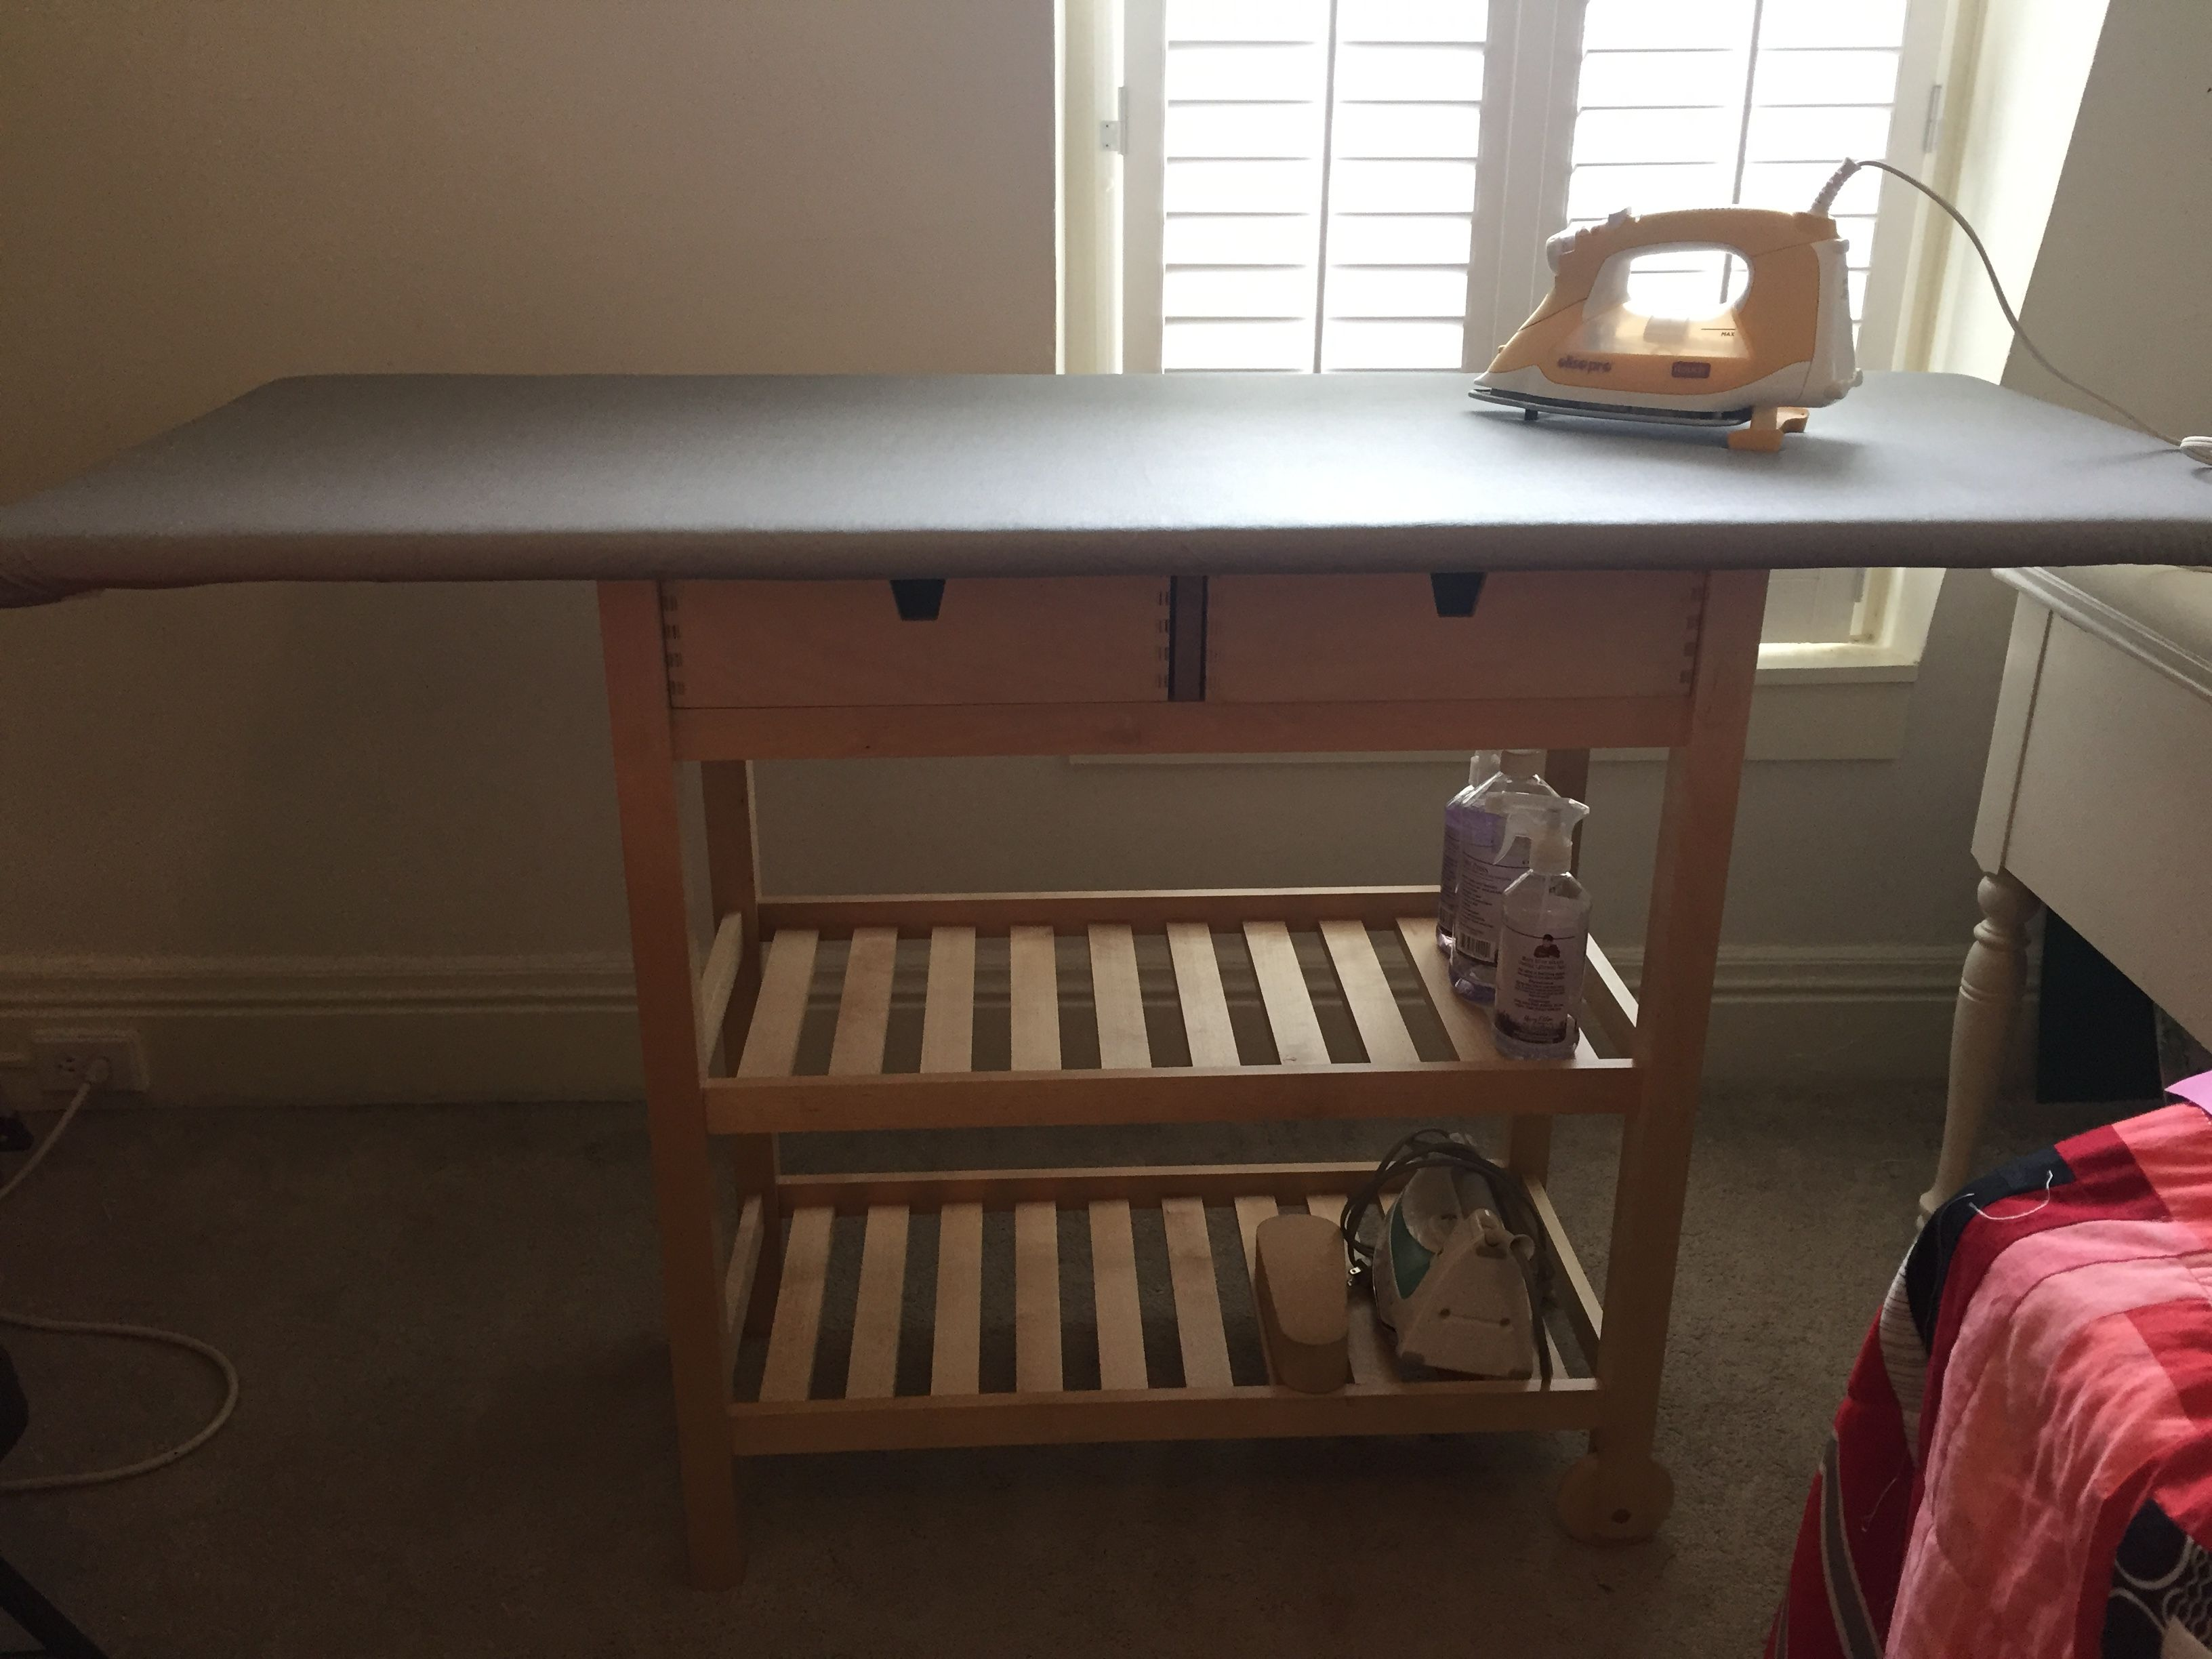 Ikea Ironing Board Hack Using The Ikea Forjoja Cabinet 24x60 Of Ironing Awesomeness Perfect For A Quilter Ikea Ironing Board Sewing Spaces Home Decor